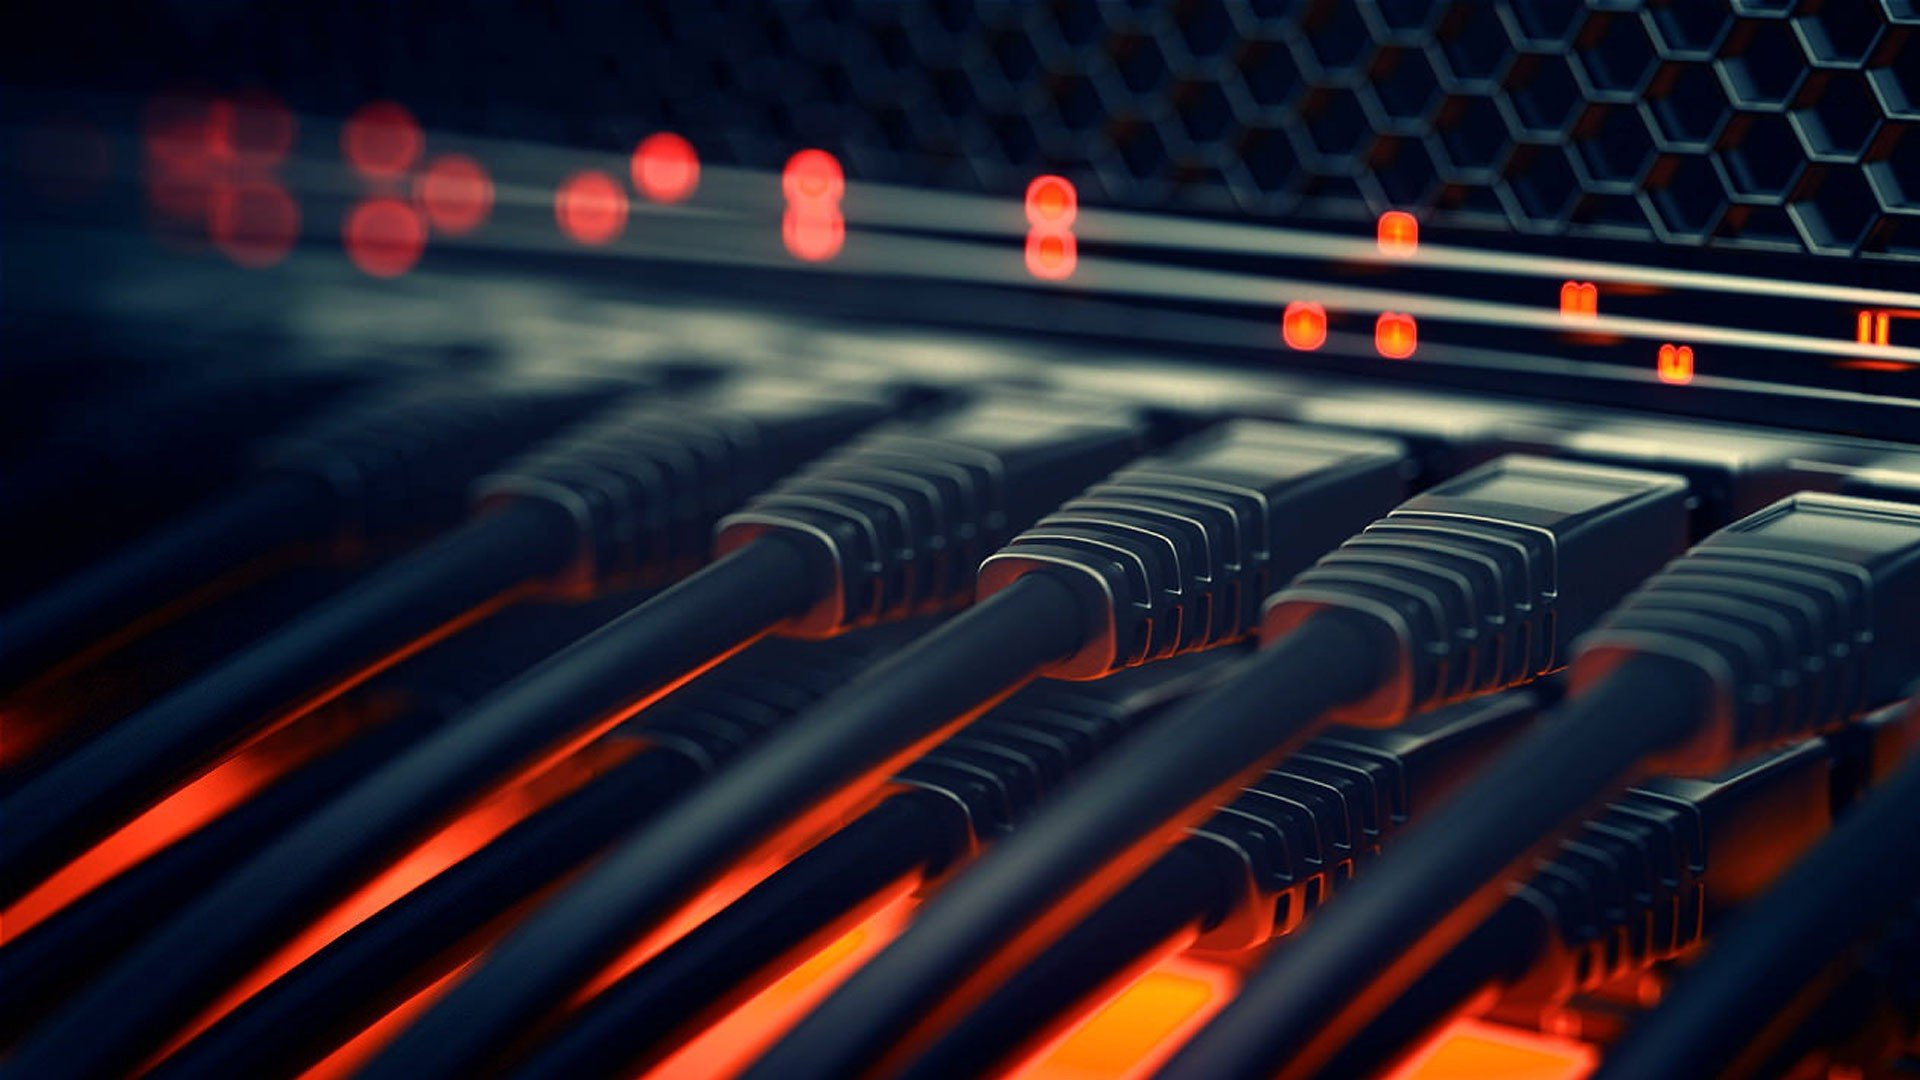 Network, Computer, Switch, Wire, Data Center HD Wallpapers